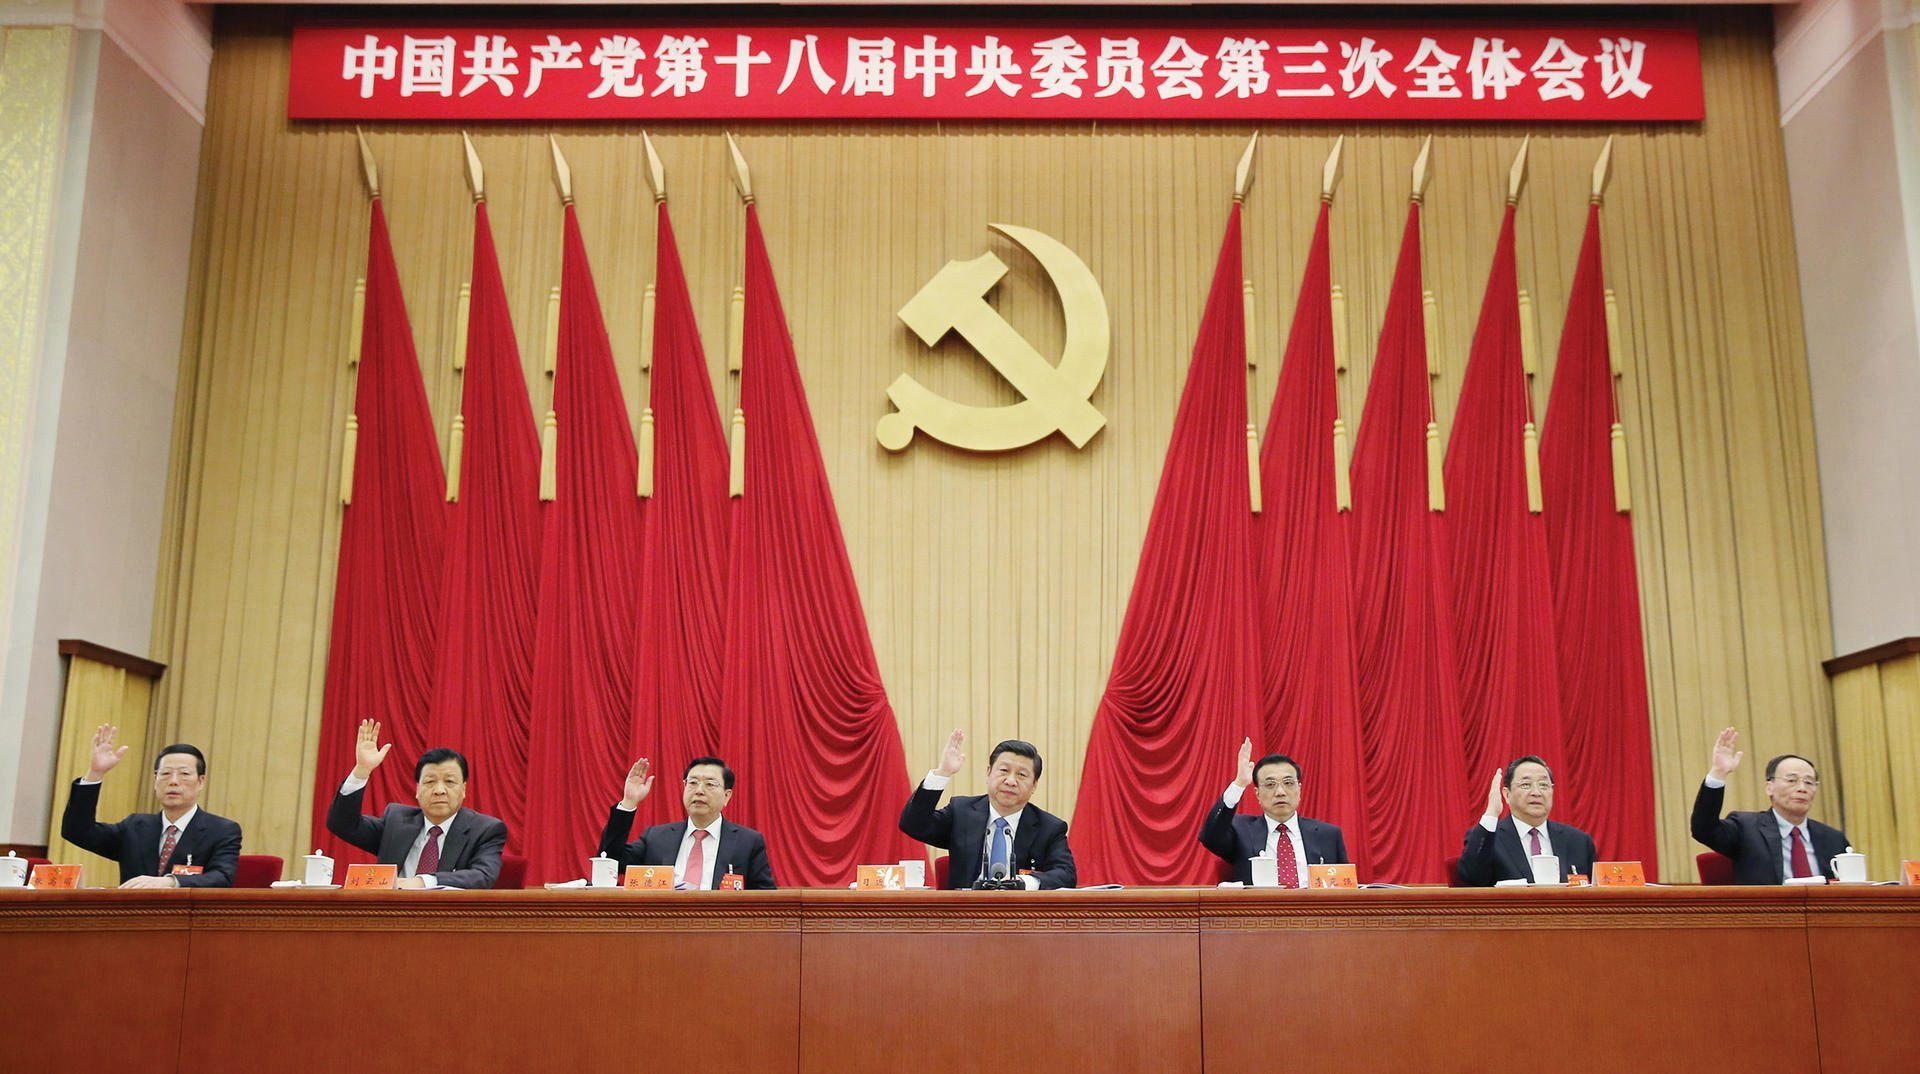 Image CHINA BEIJING- 18TH CPC CENTRAL COMMITTEE-THIRD PLENARY SESSION